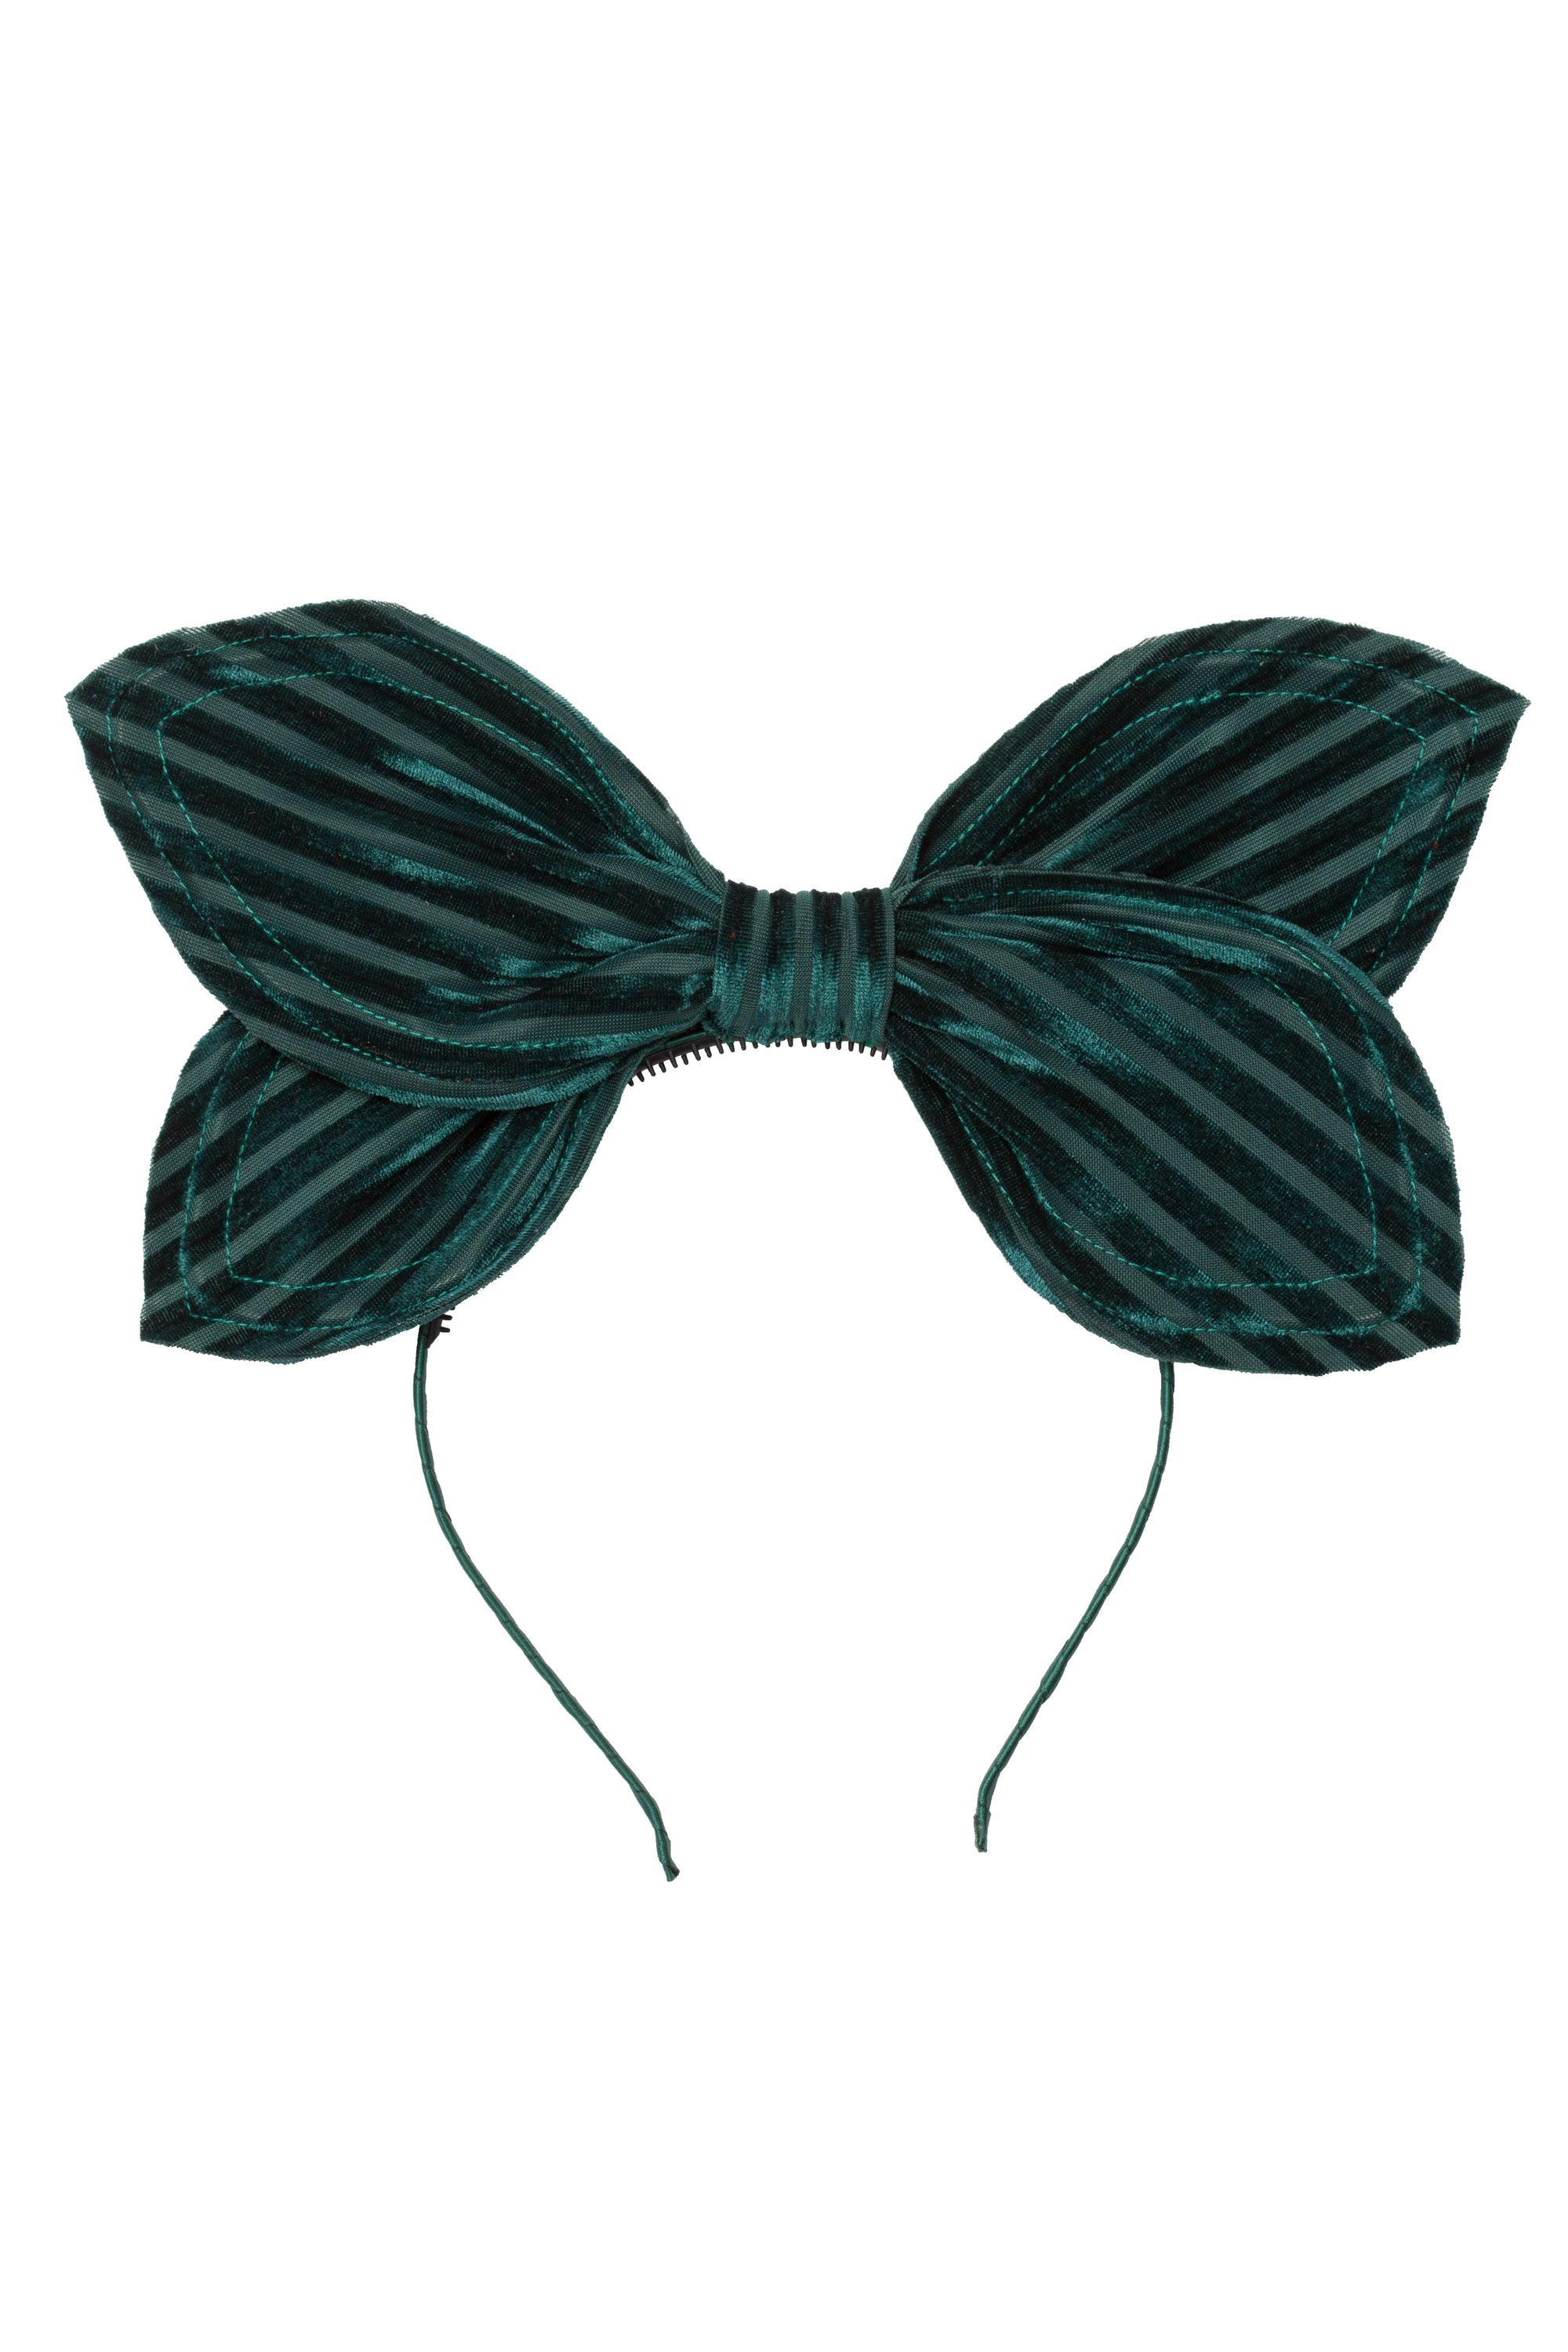 Growing Orchid Headband - Hunter Green Velvet Stripe - PROJECT 6, modest fashion